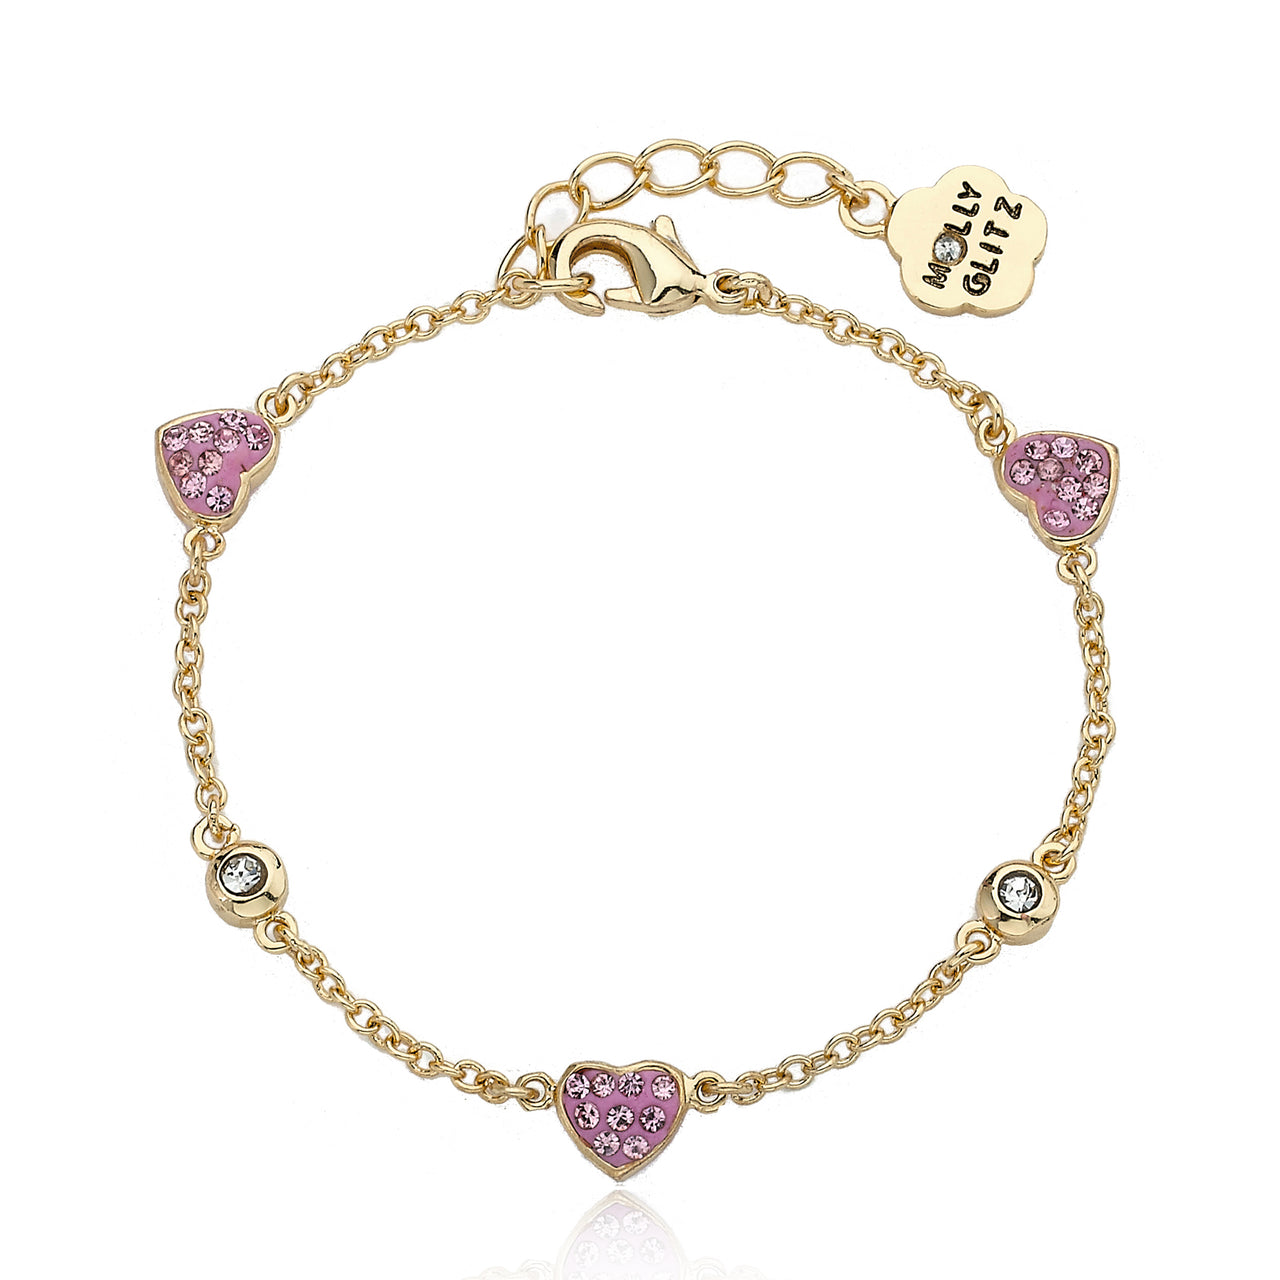 Heart Of Jewels 3 Crystal Heart Chain Bracelet